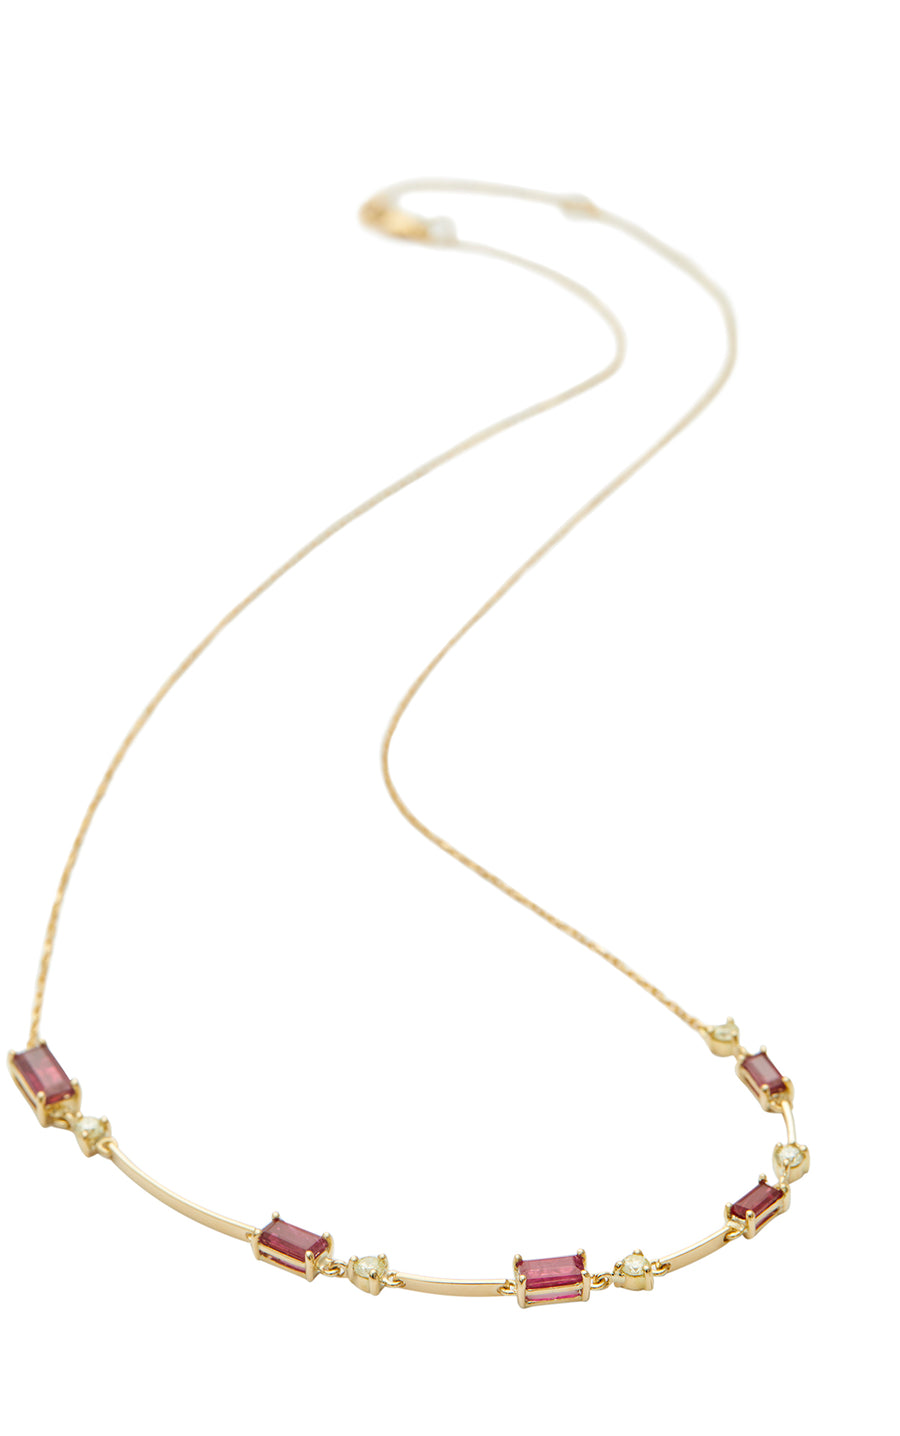 Ruby & Canary Yellow Diamond Bar Necklace